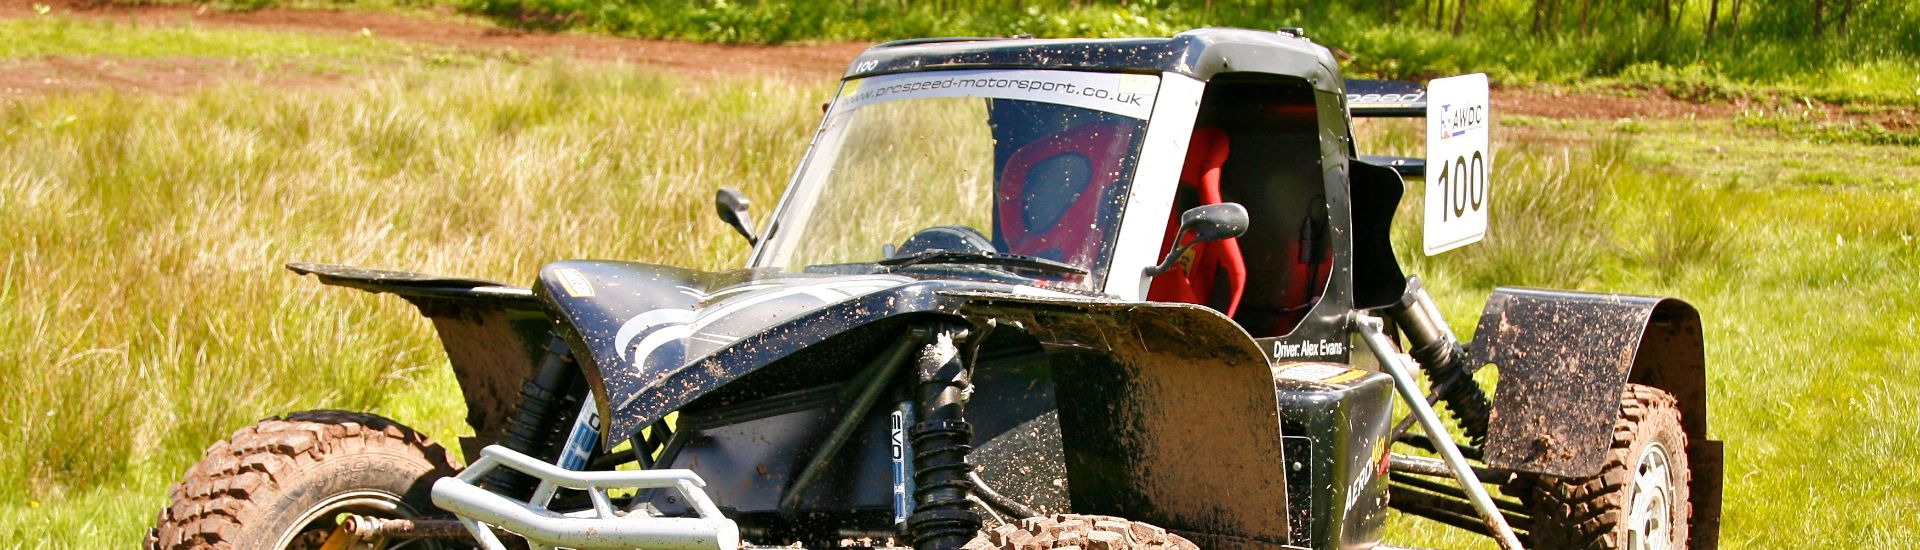 Off Road Buggy - Motorsport Preparation Gallery 1